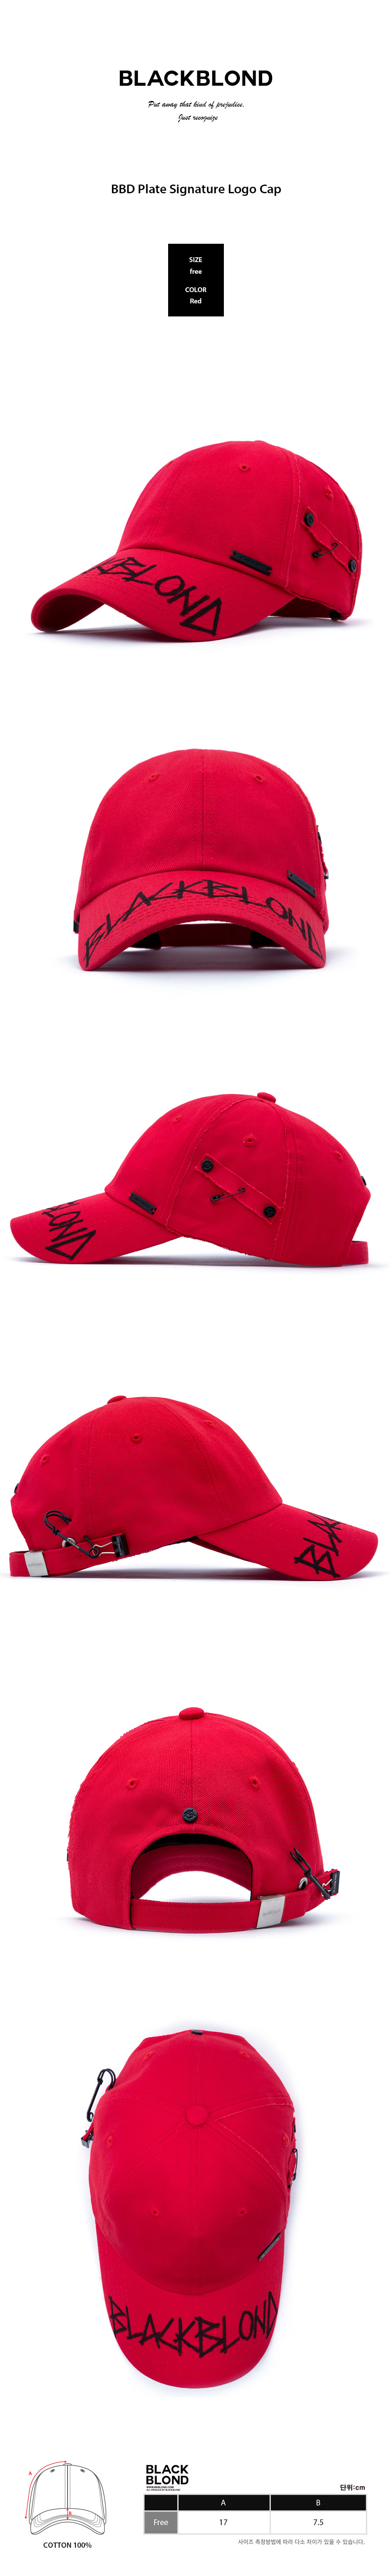 BLACKBLOND - BBD Plate Signature Logo Cap (Red)